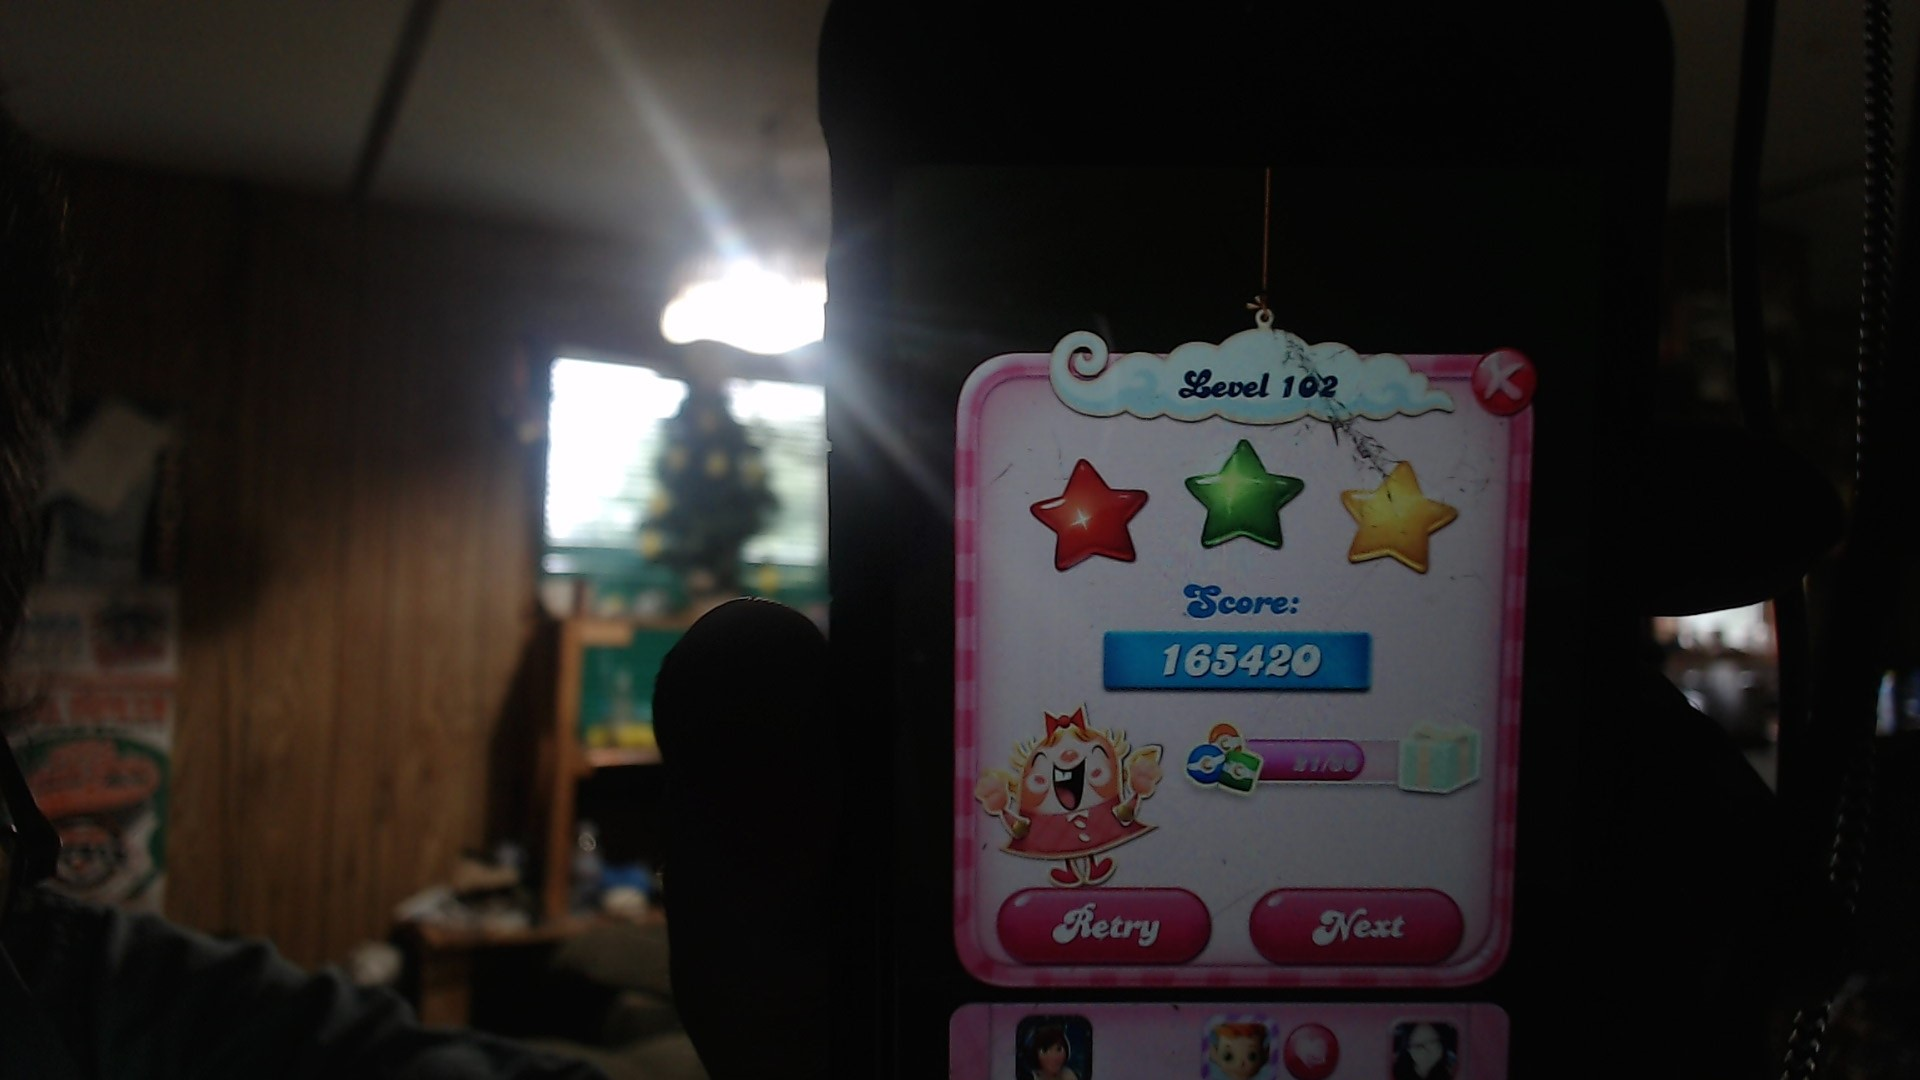 Candy Crush Saga: Level 102 165,420 points